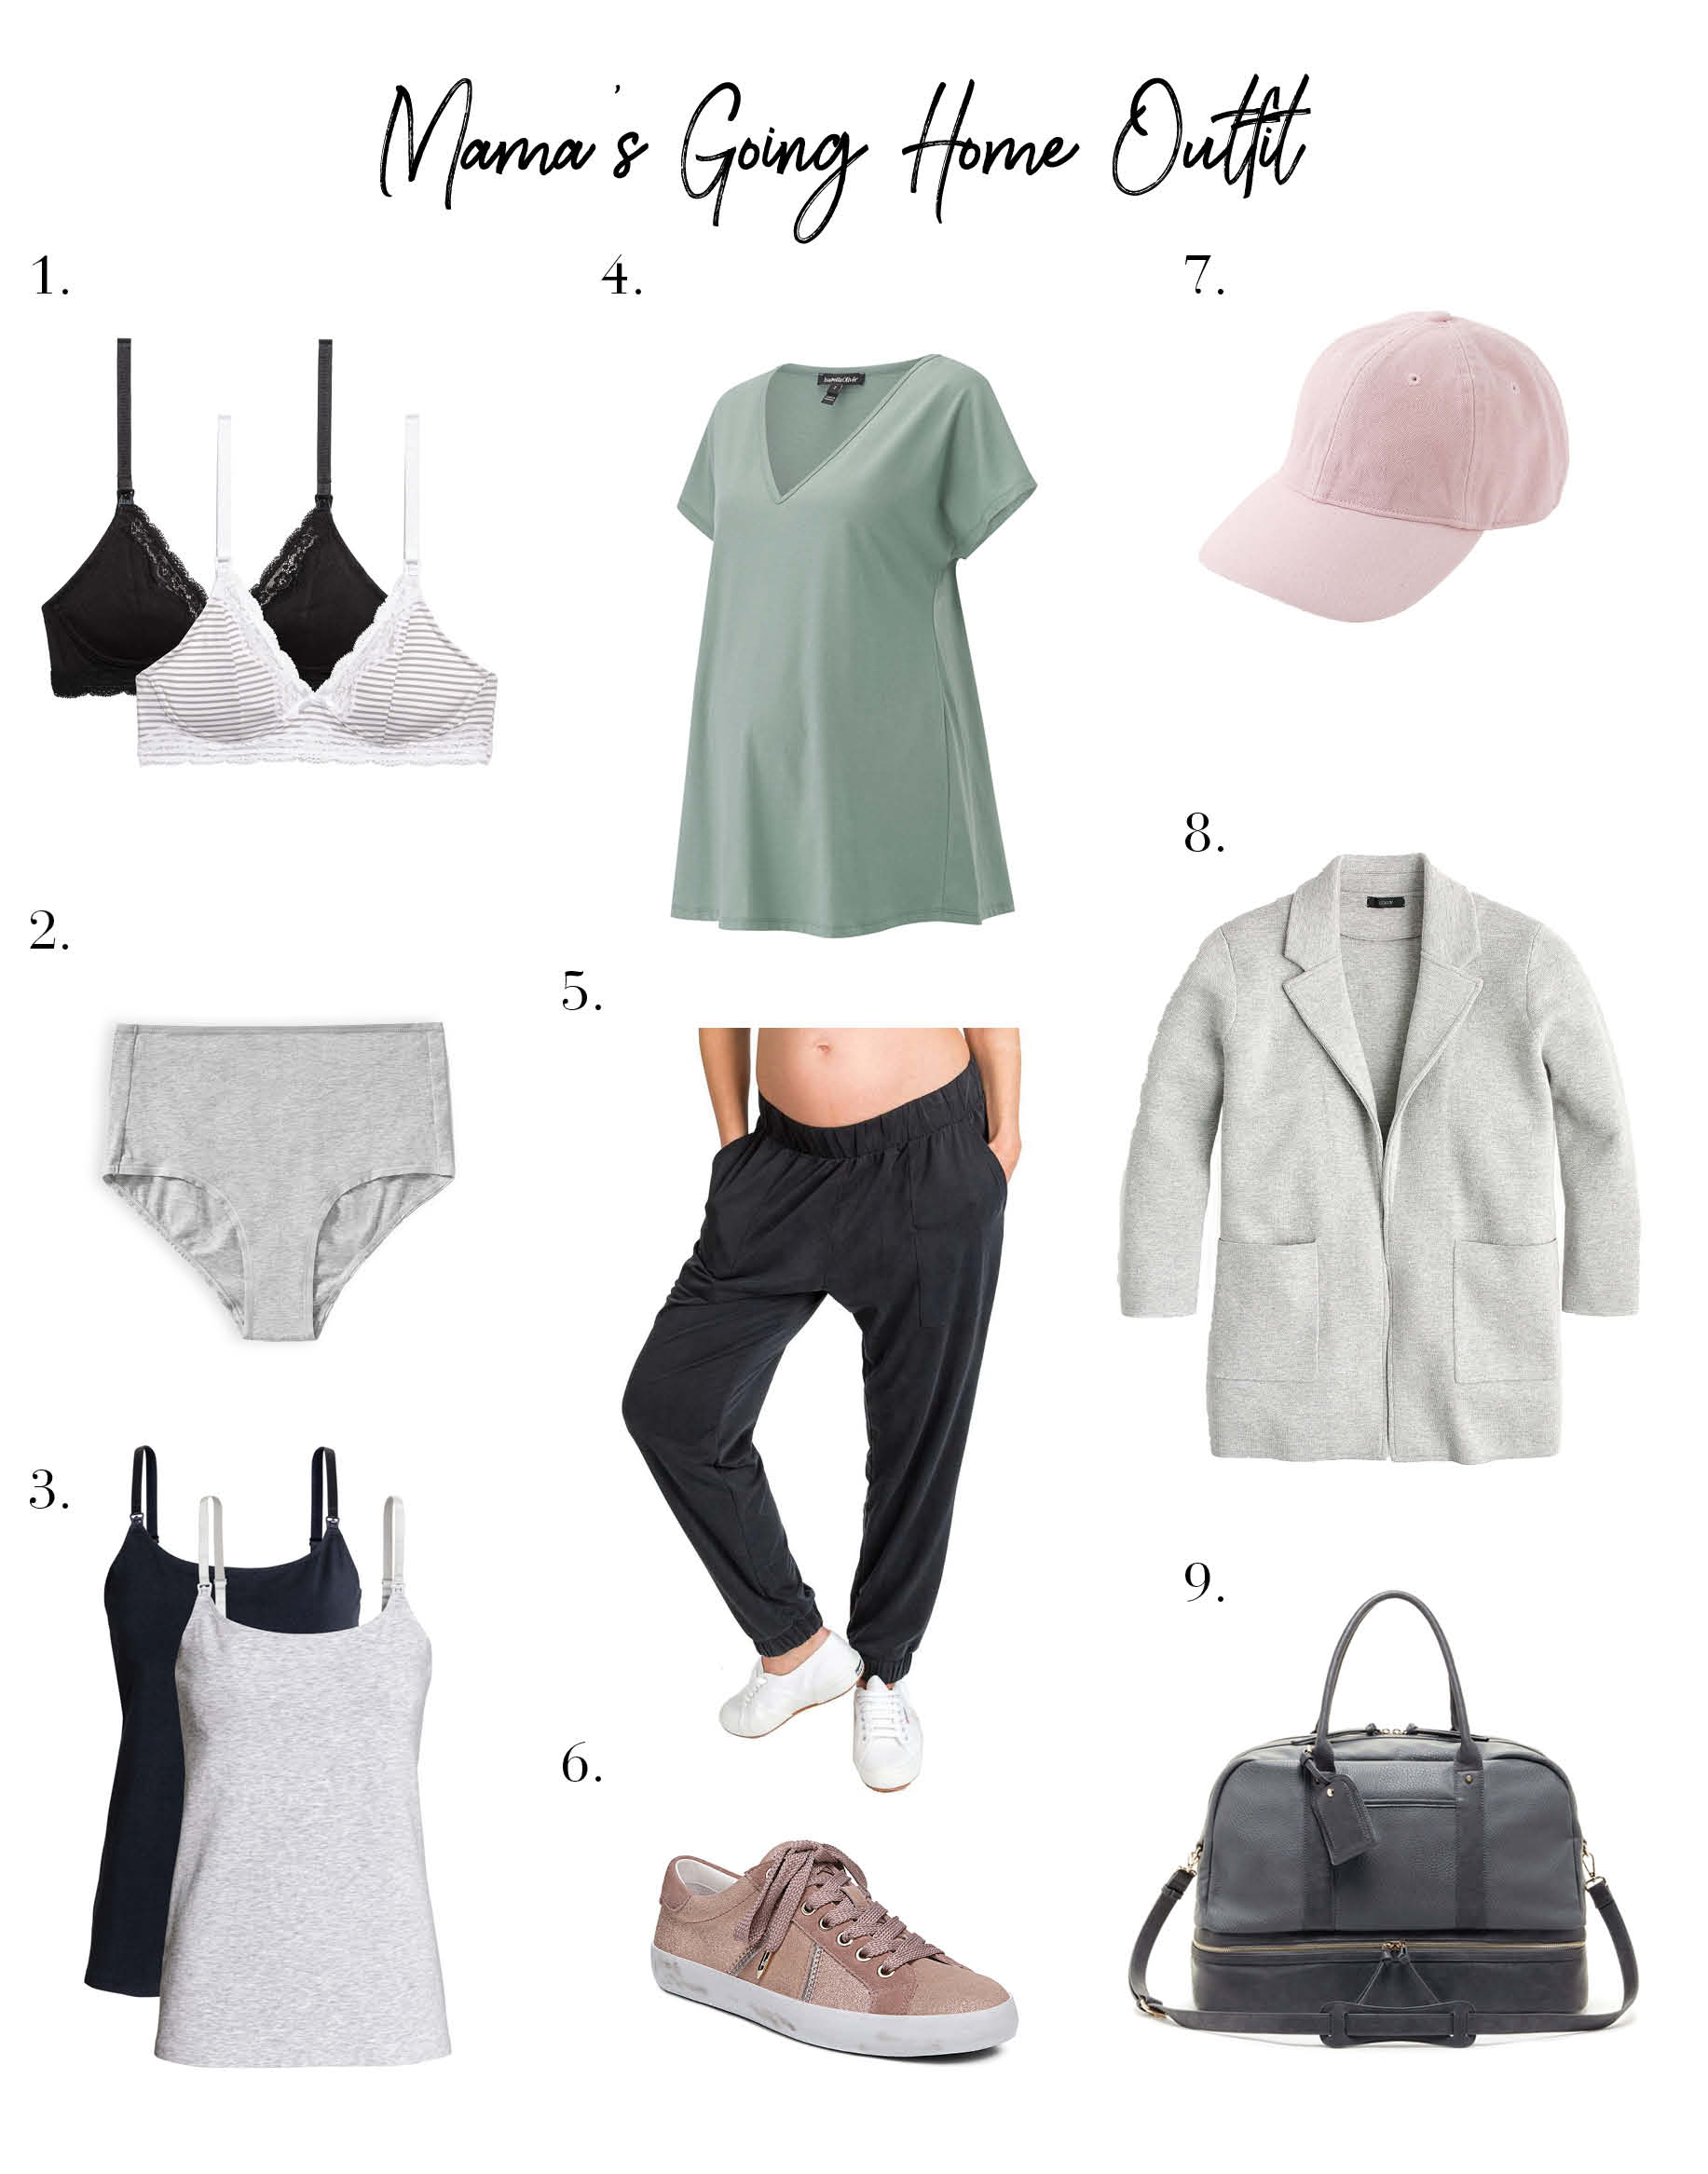 da6c957f412 What to Pack + Wear for that Post-Baby Hospital Stay - The Mom Edit